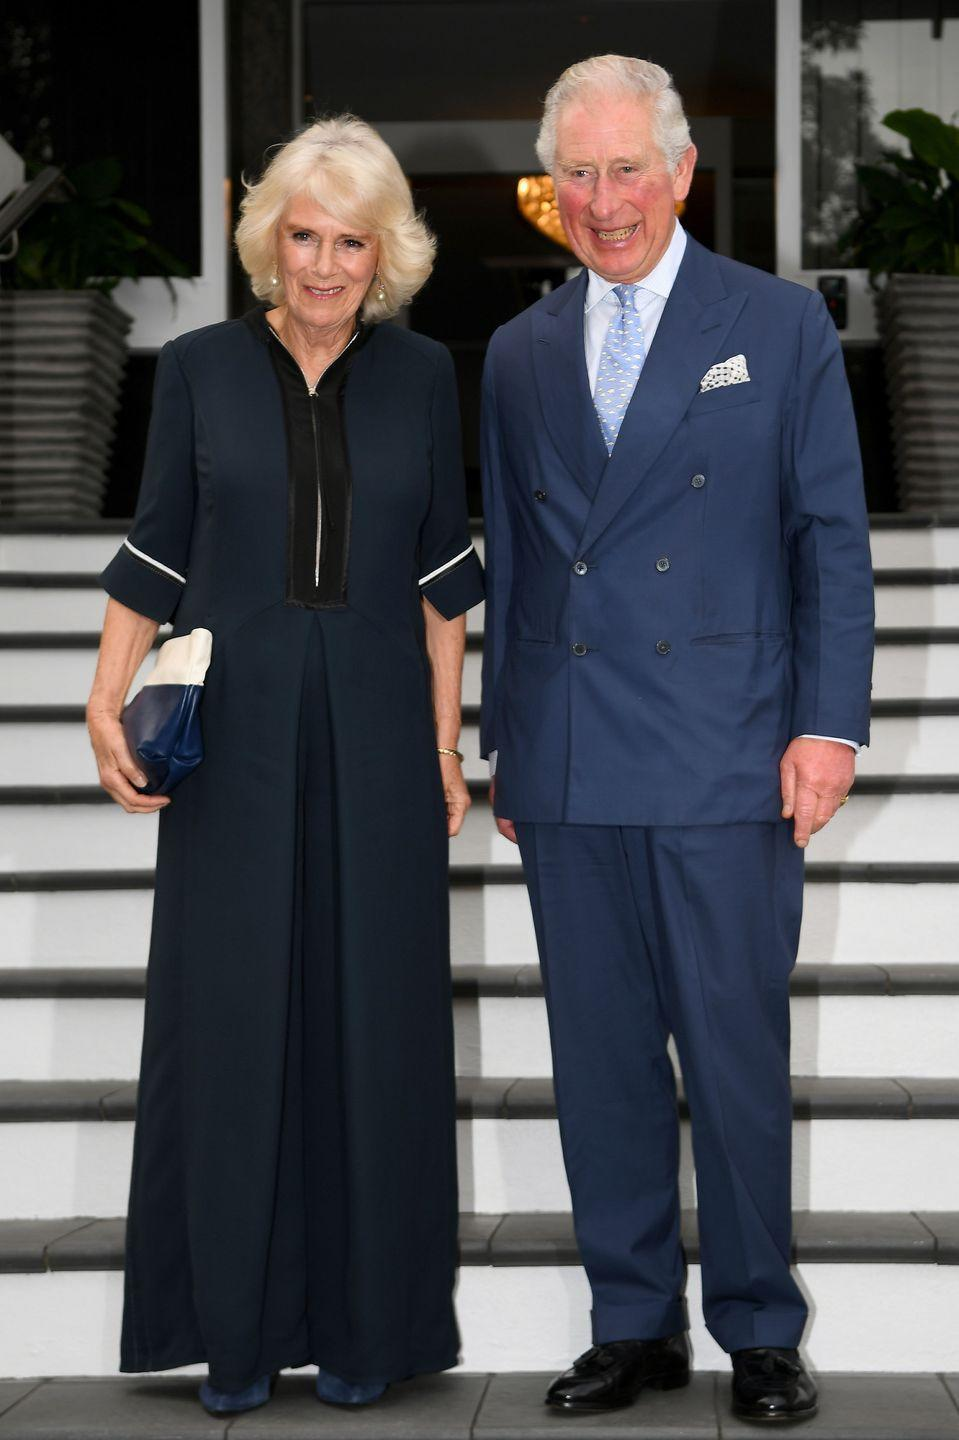 <p>Charles and Camilla during their royal tour of New Zealand this fall. </p>